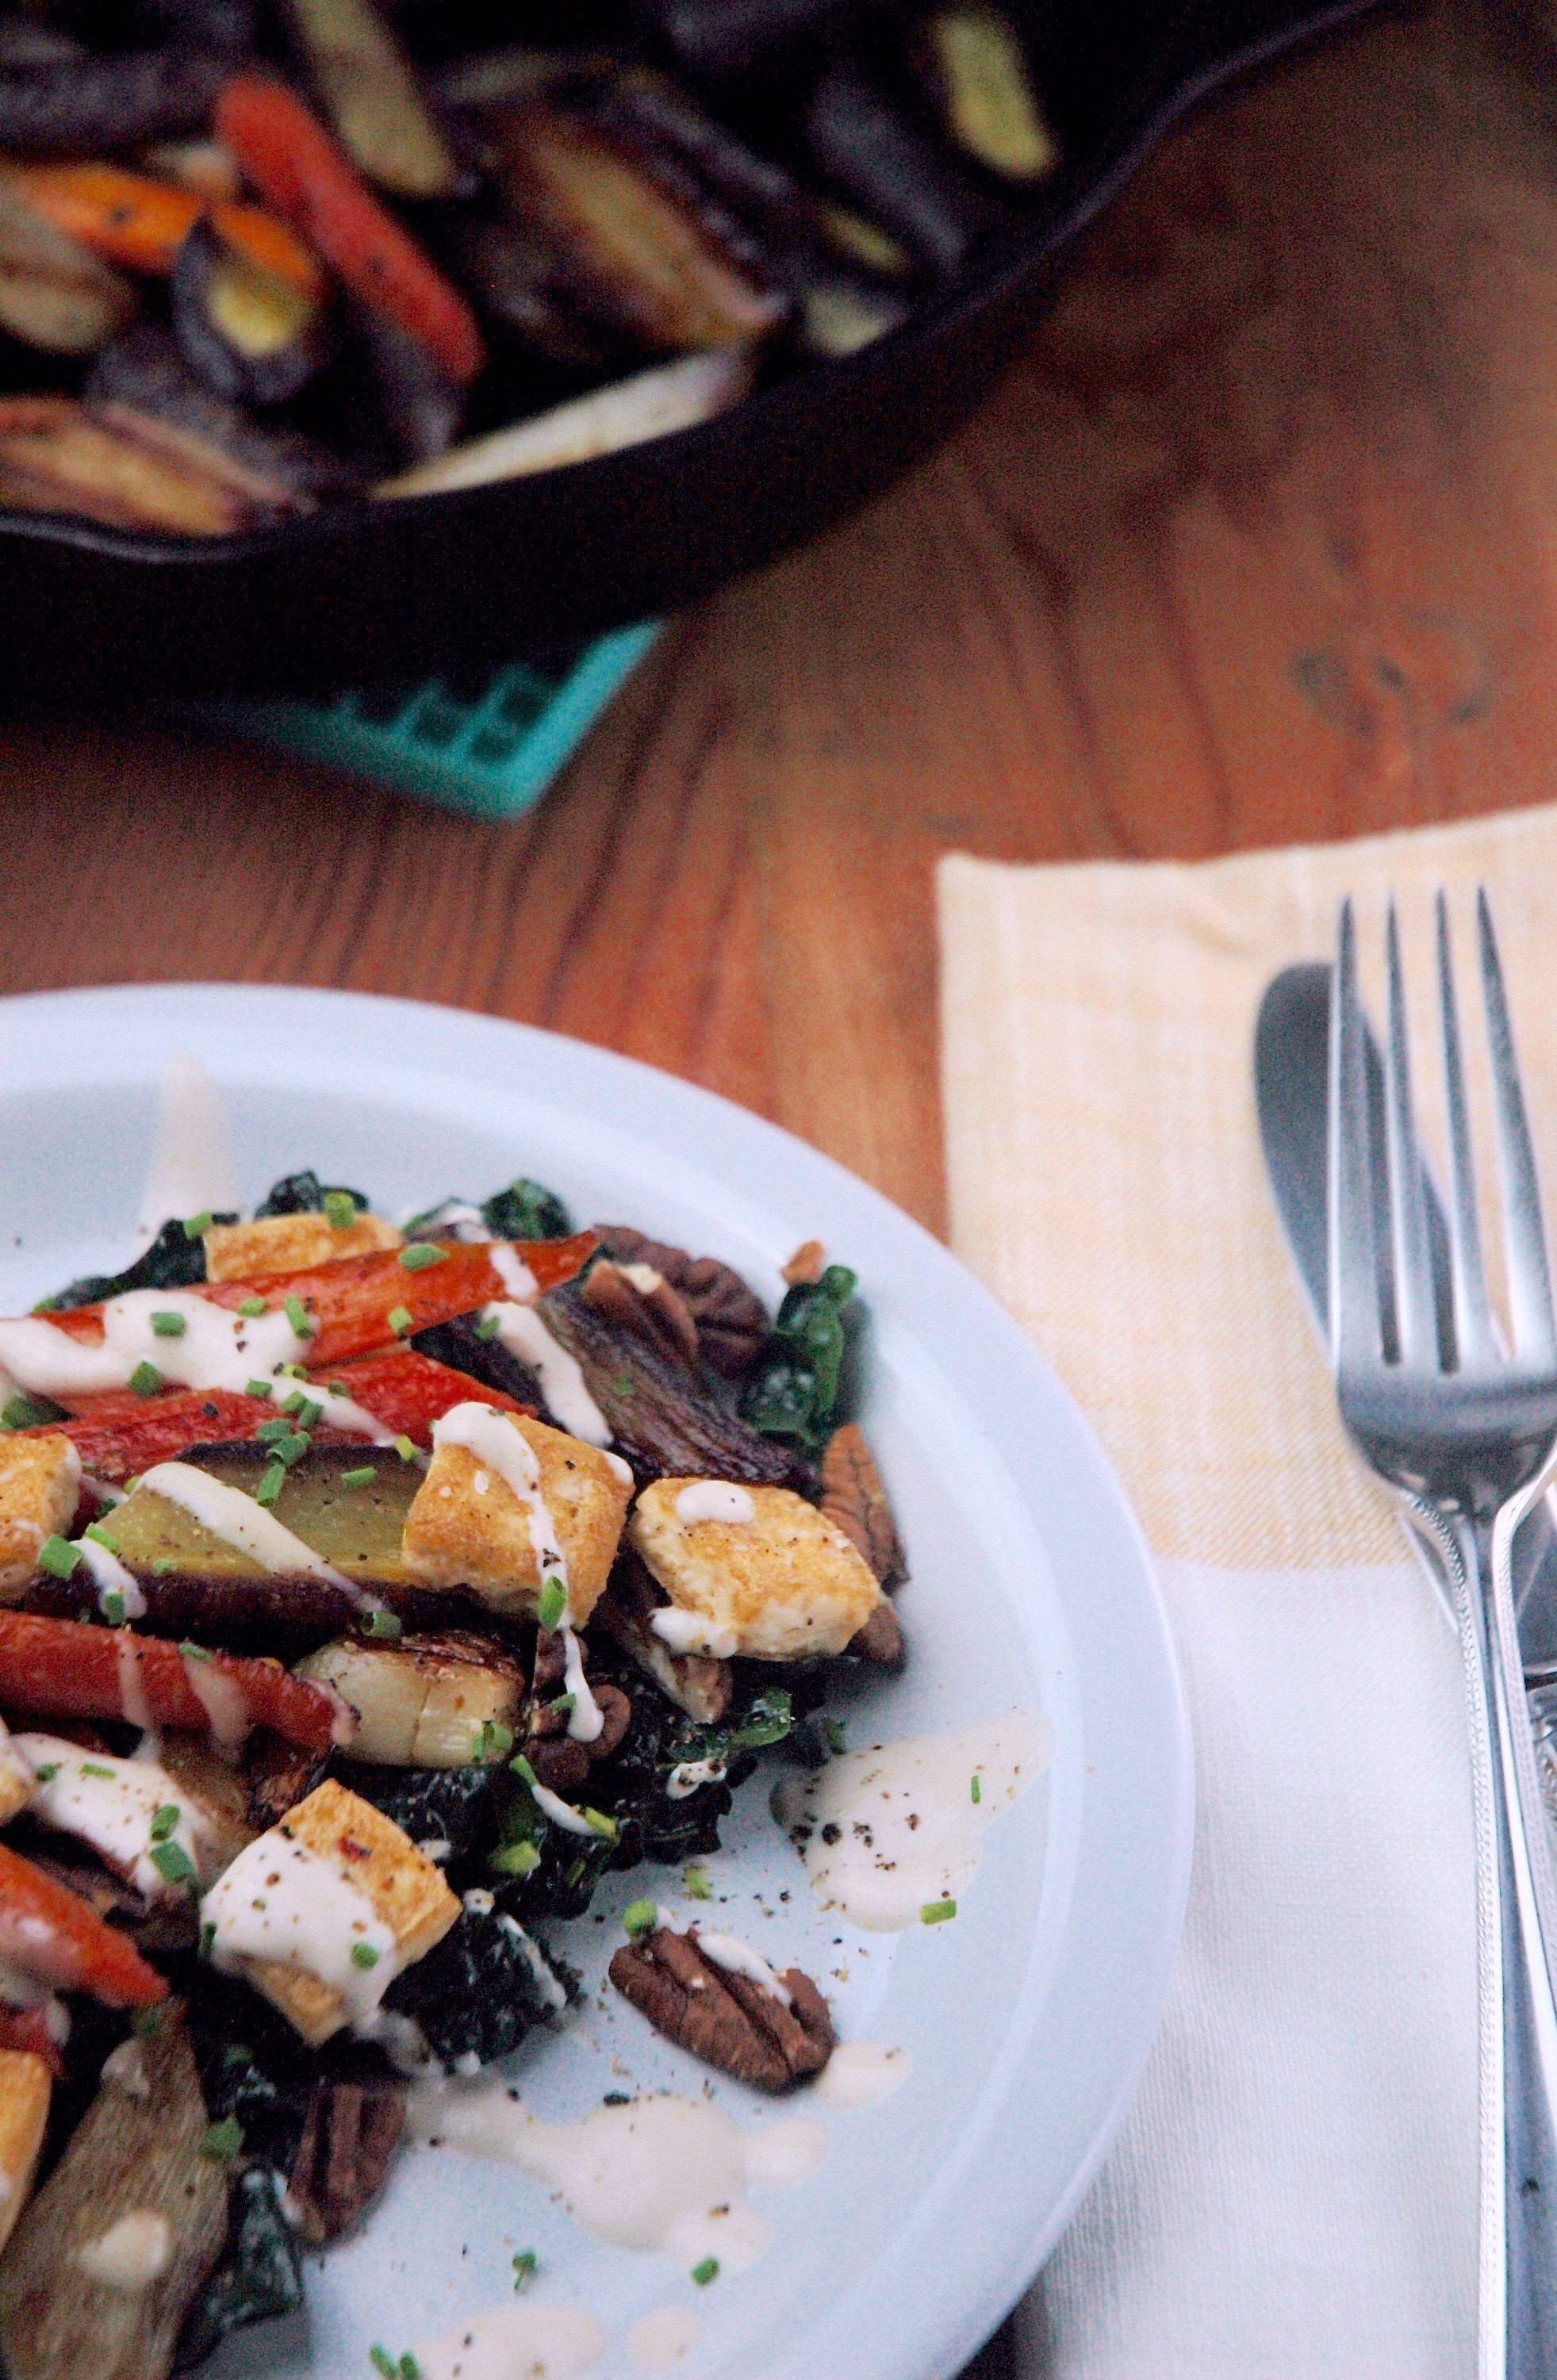 Carrot & Kale Salad with Creamy Honey Tahini Dressing